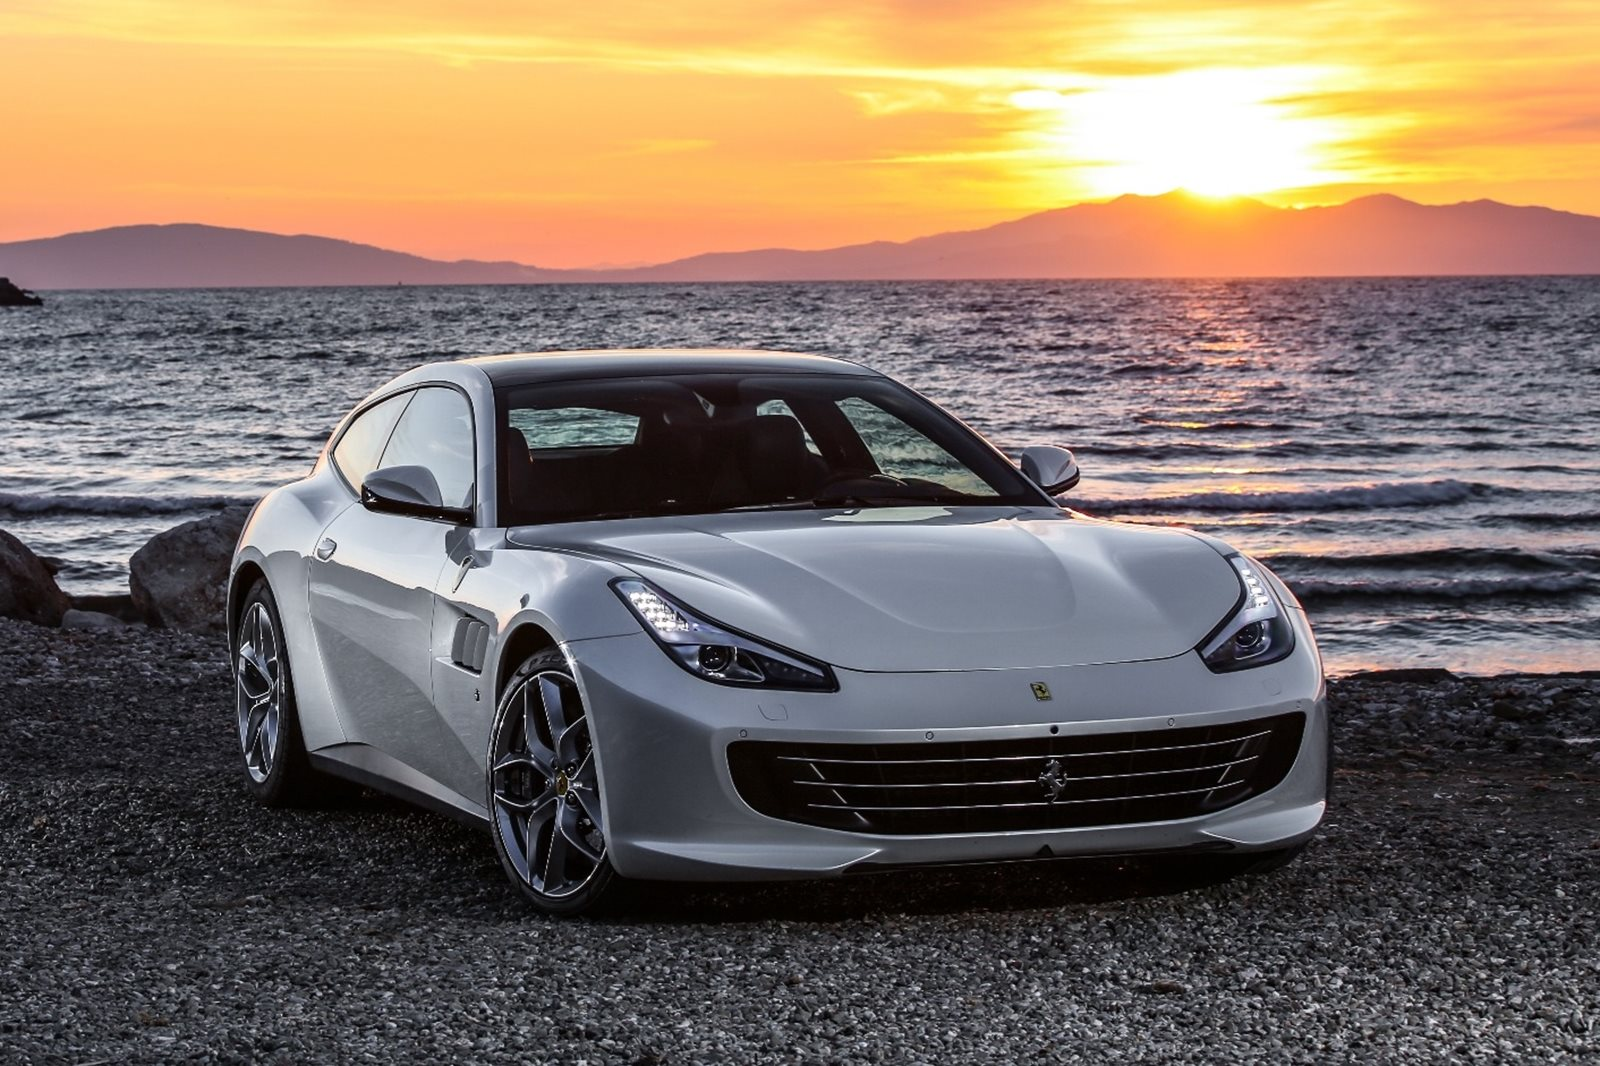 2018 ferrari gtc4lusso t review trims specs and price carbuzz. Black Bedroom Furniture Sets. Home Design Ideas